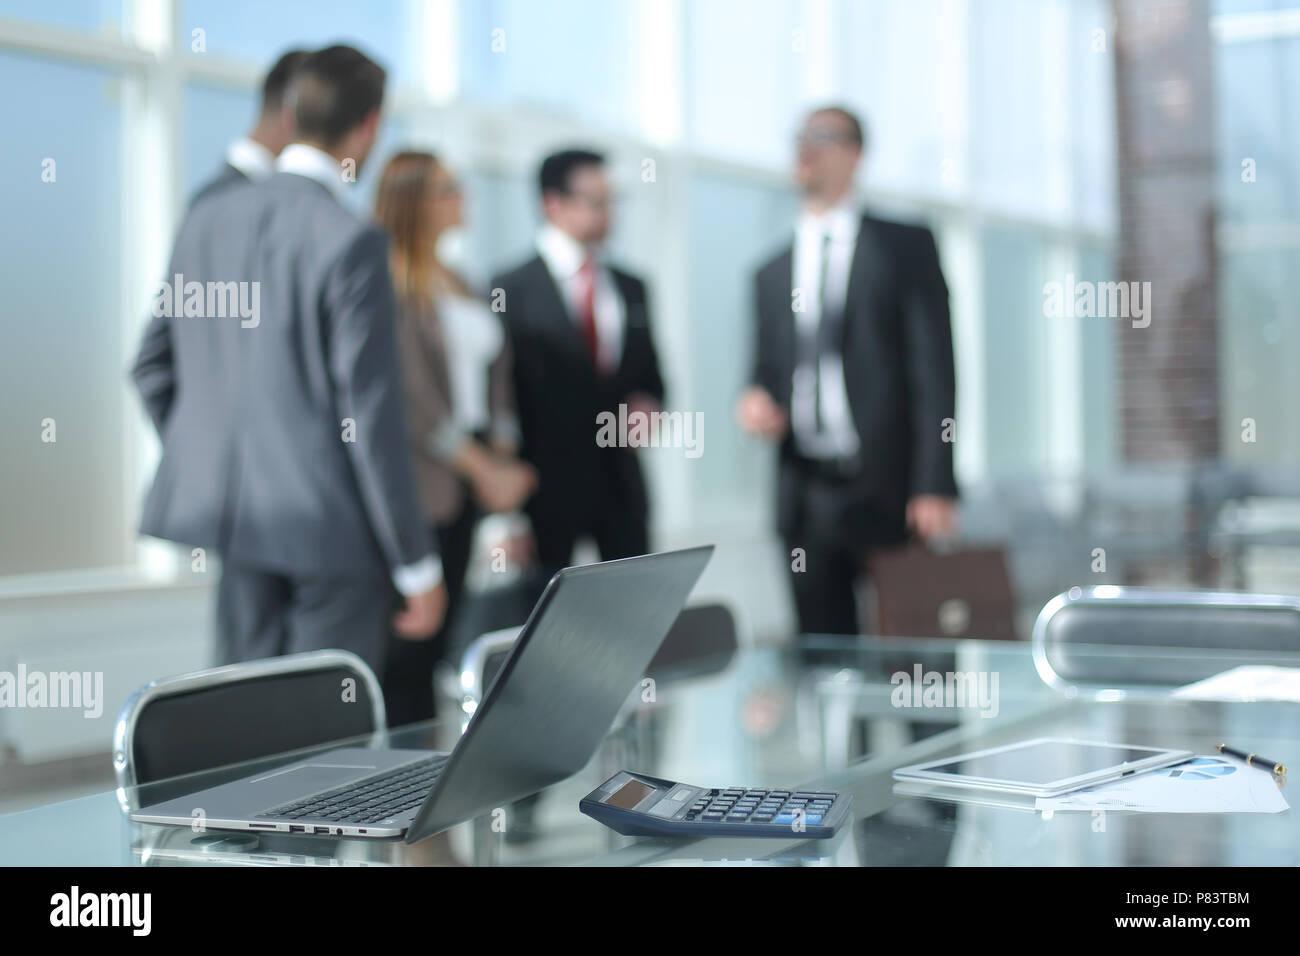 work Desk in a modern office. - Stock Image